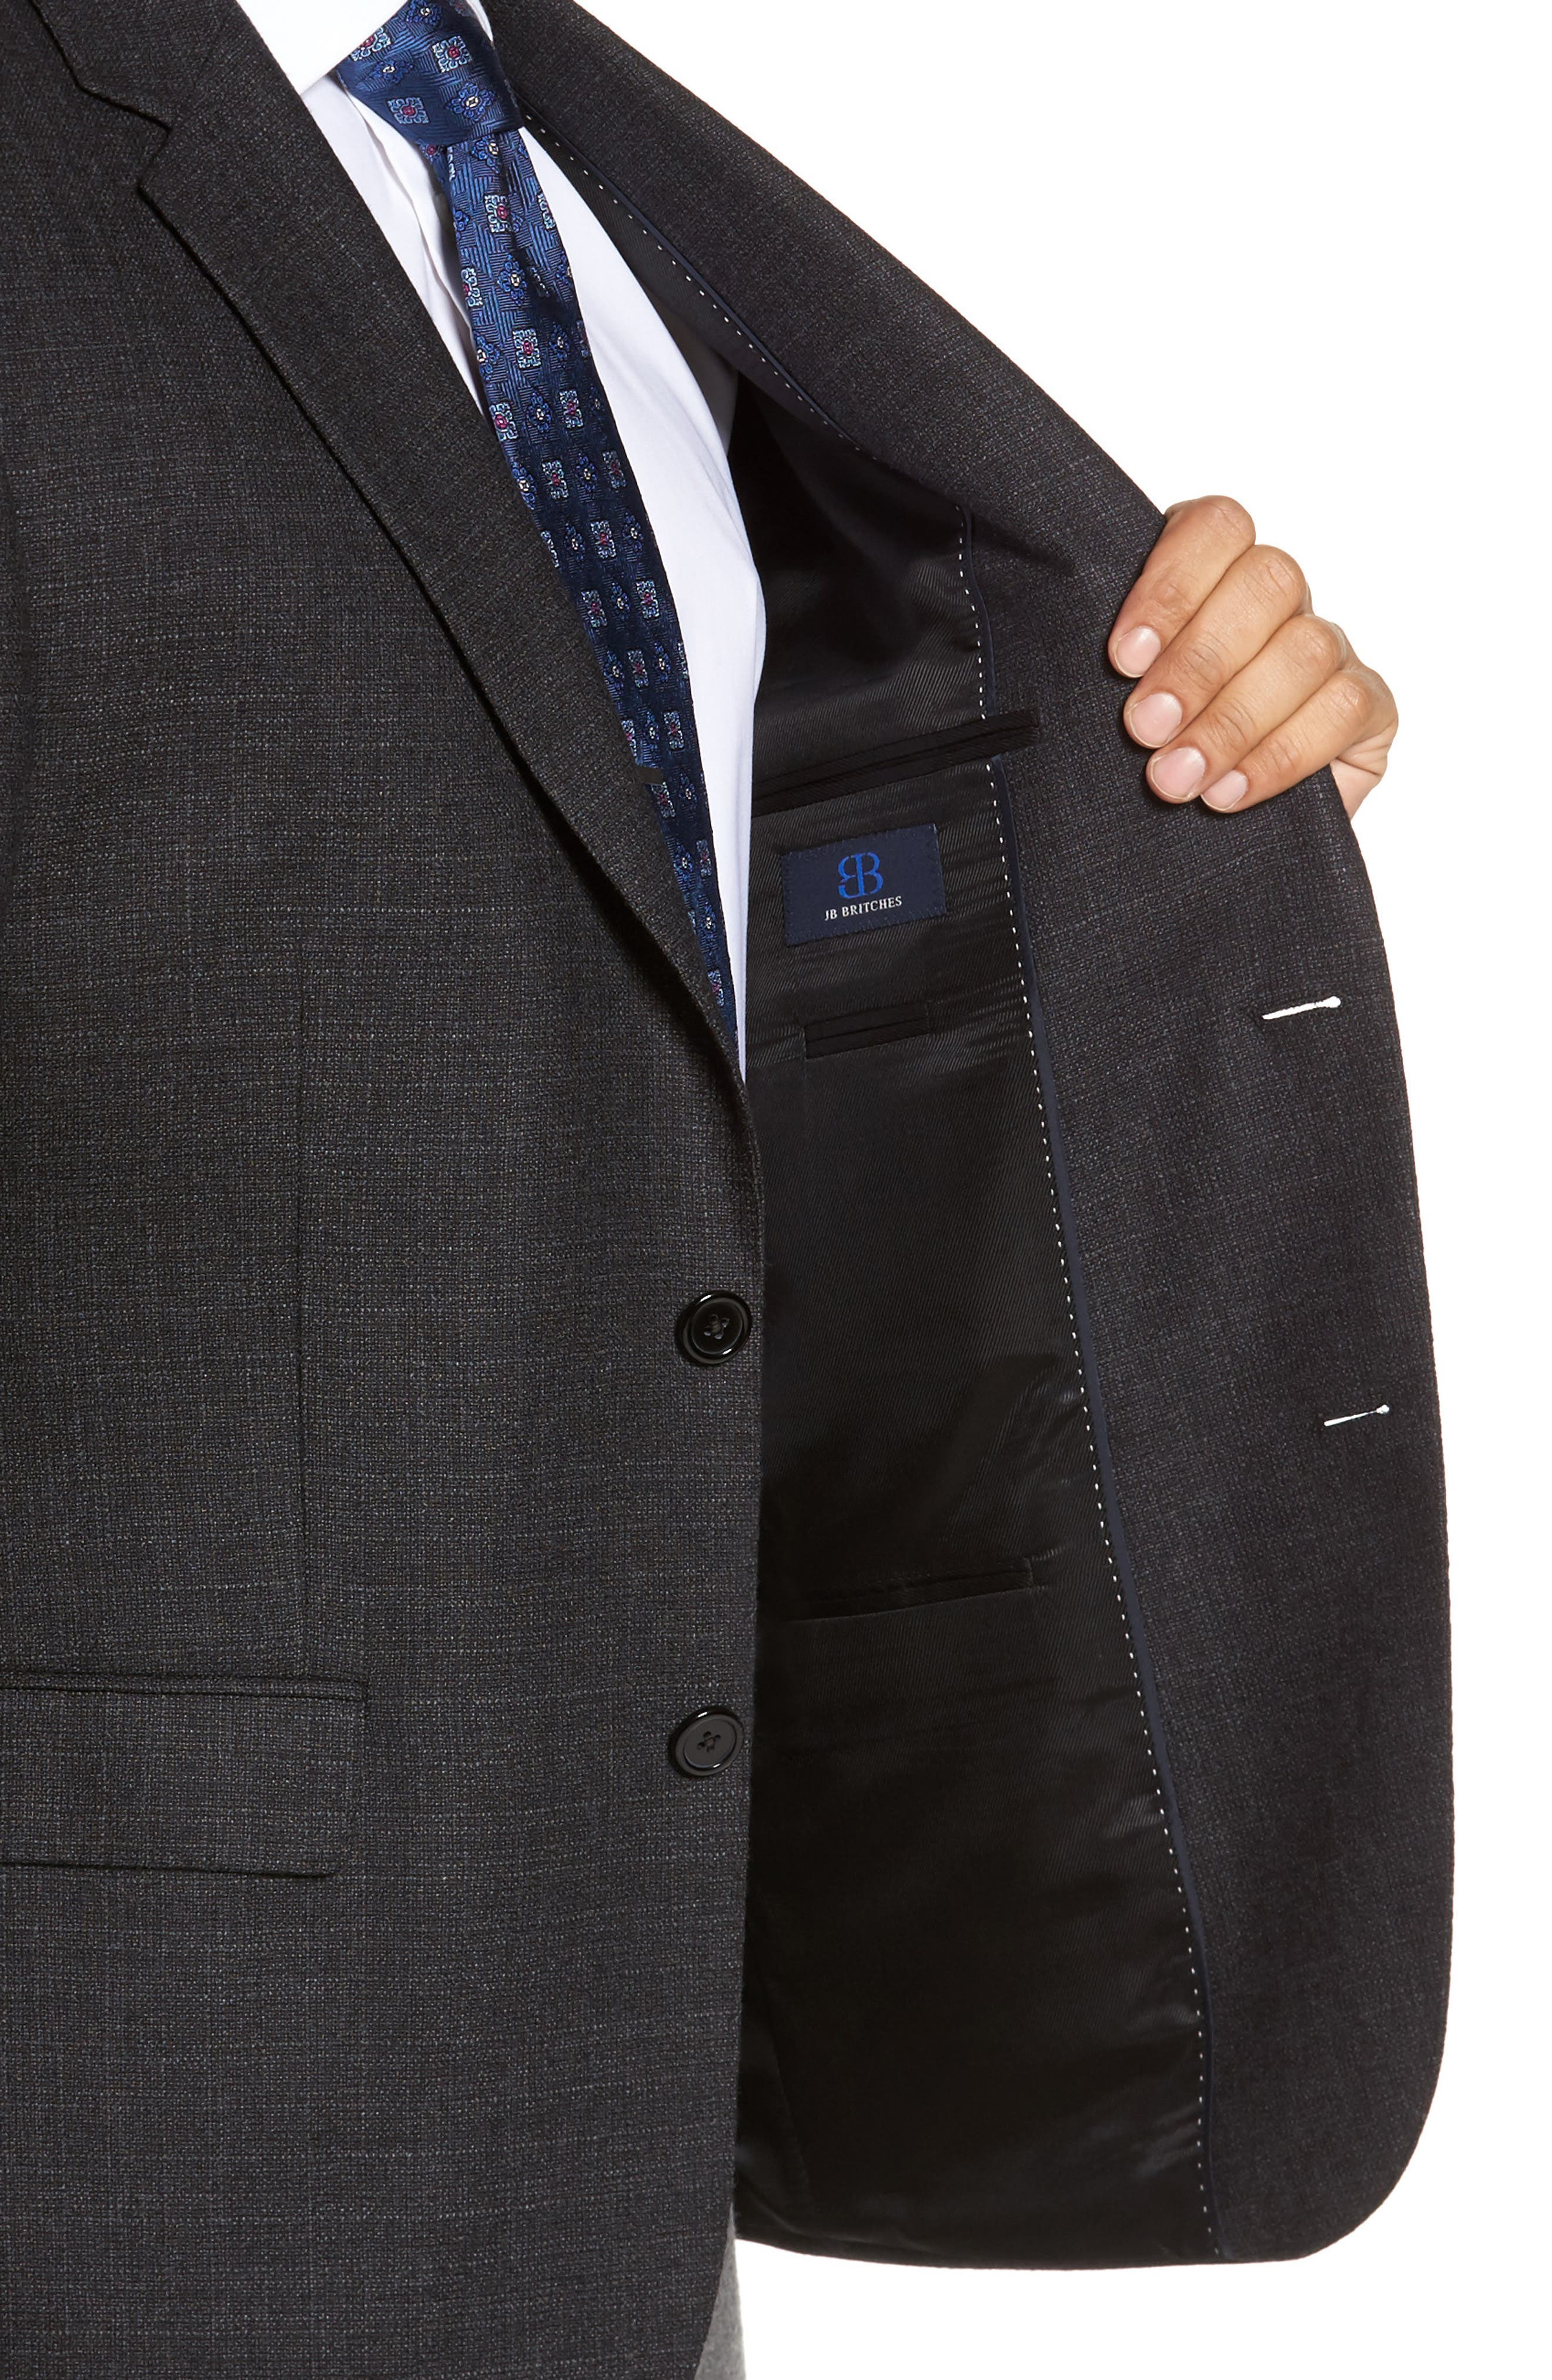 Classic Fit Wool Blazer,                             Alternate thumbnail 4, color,                             Charcoal